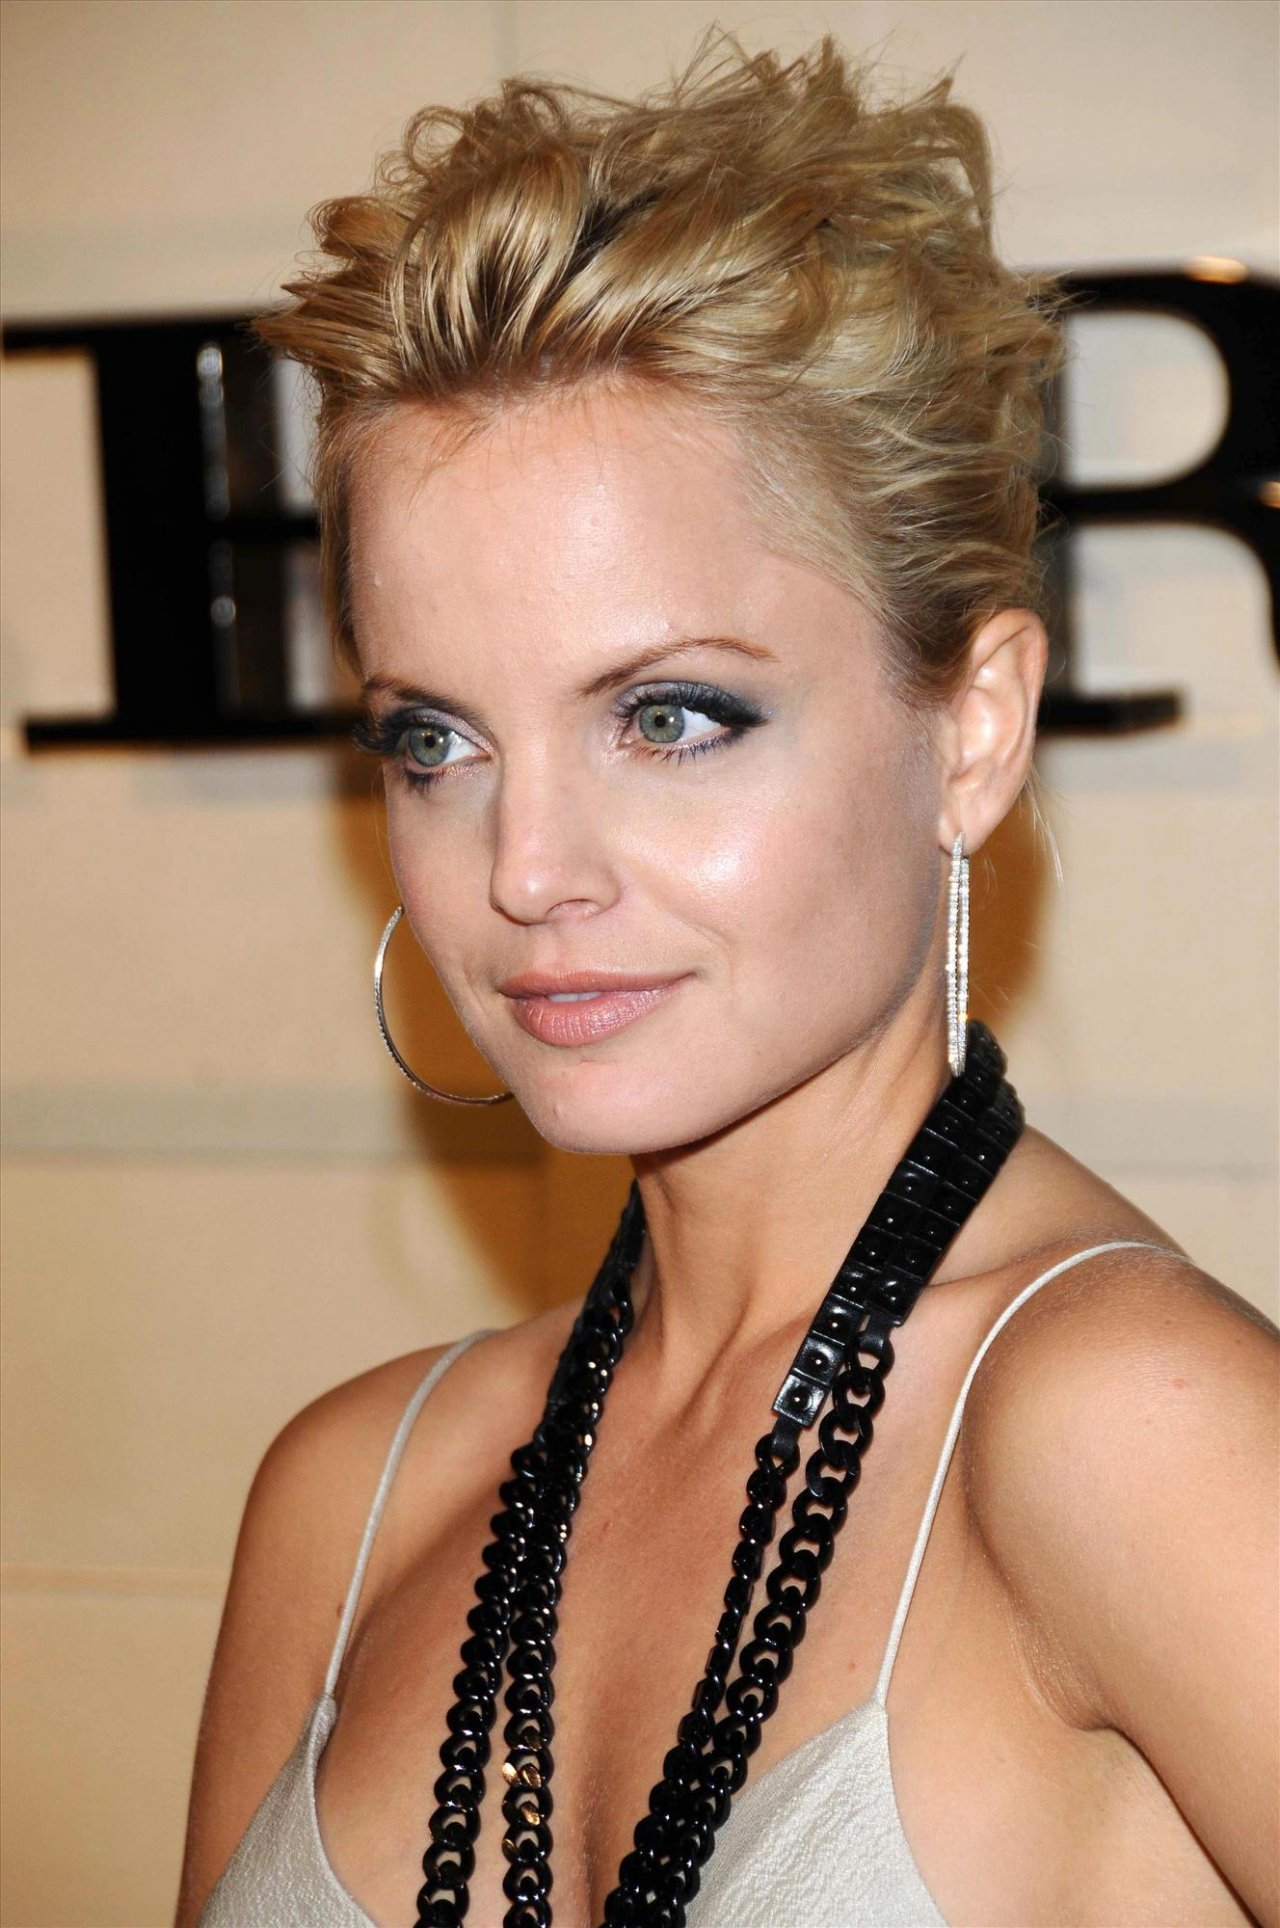 Mena Suvari wallpapers (100582). Popular Mena Suvari pictures, photos ...: www.semanticsys.org/wallpaper/mena-suvari/100582.html